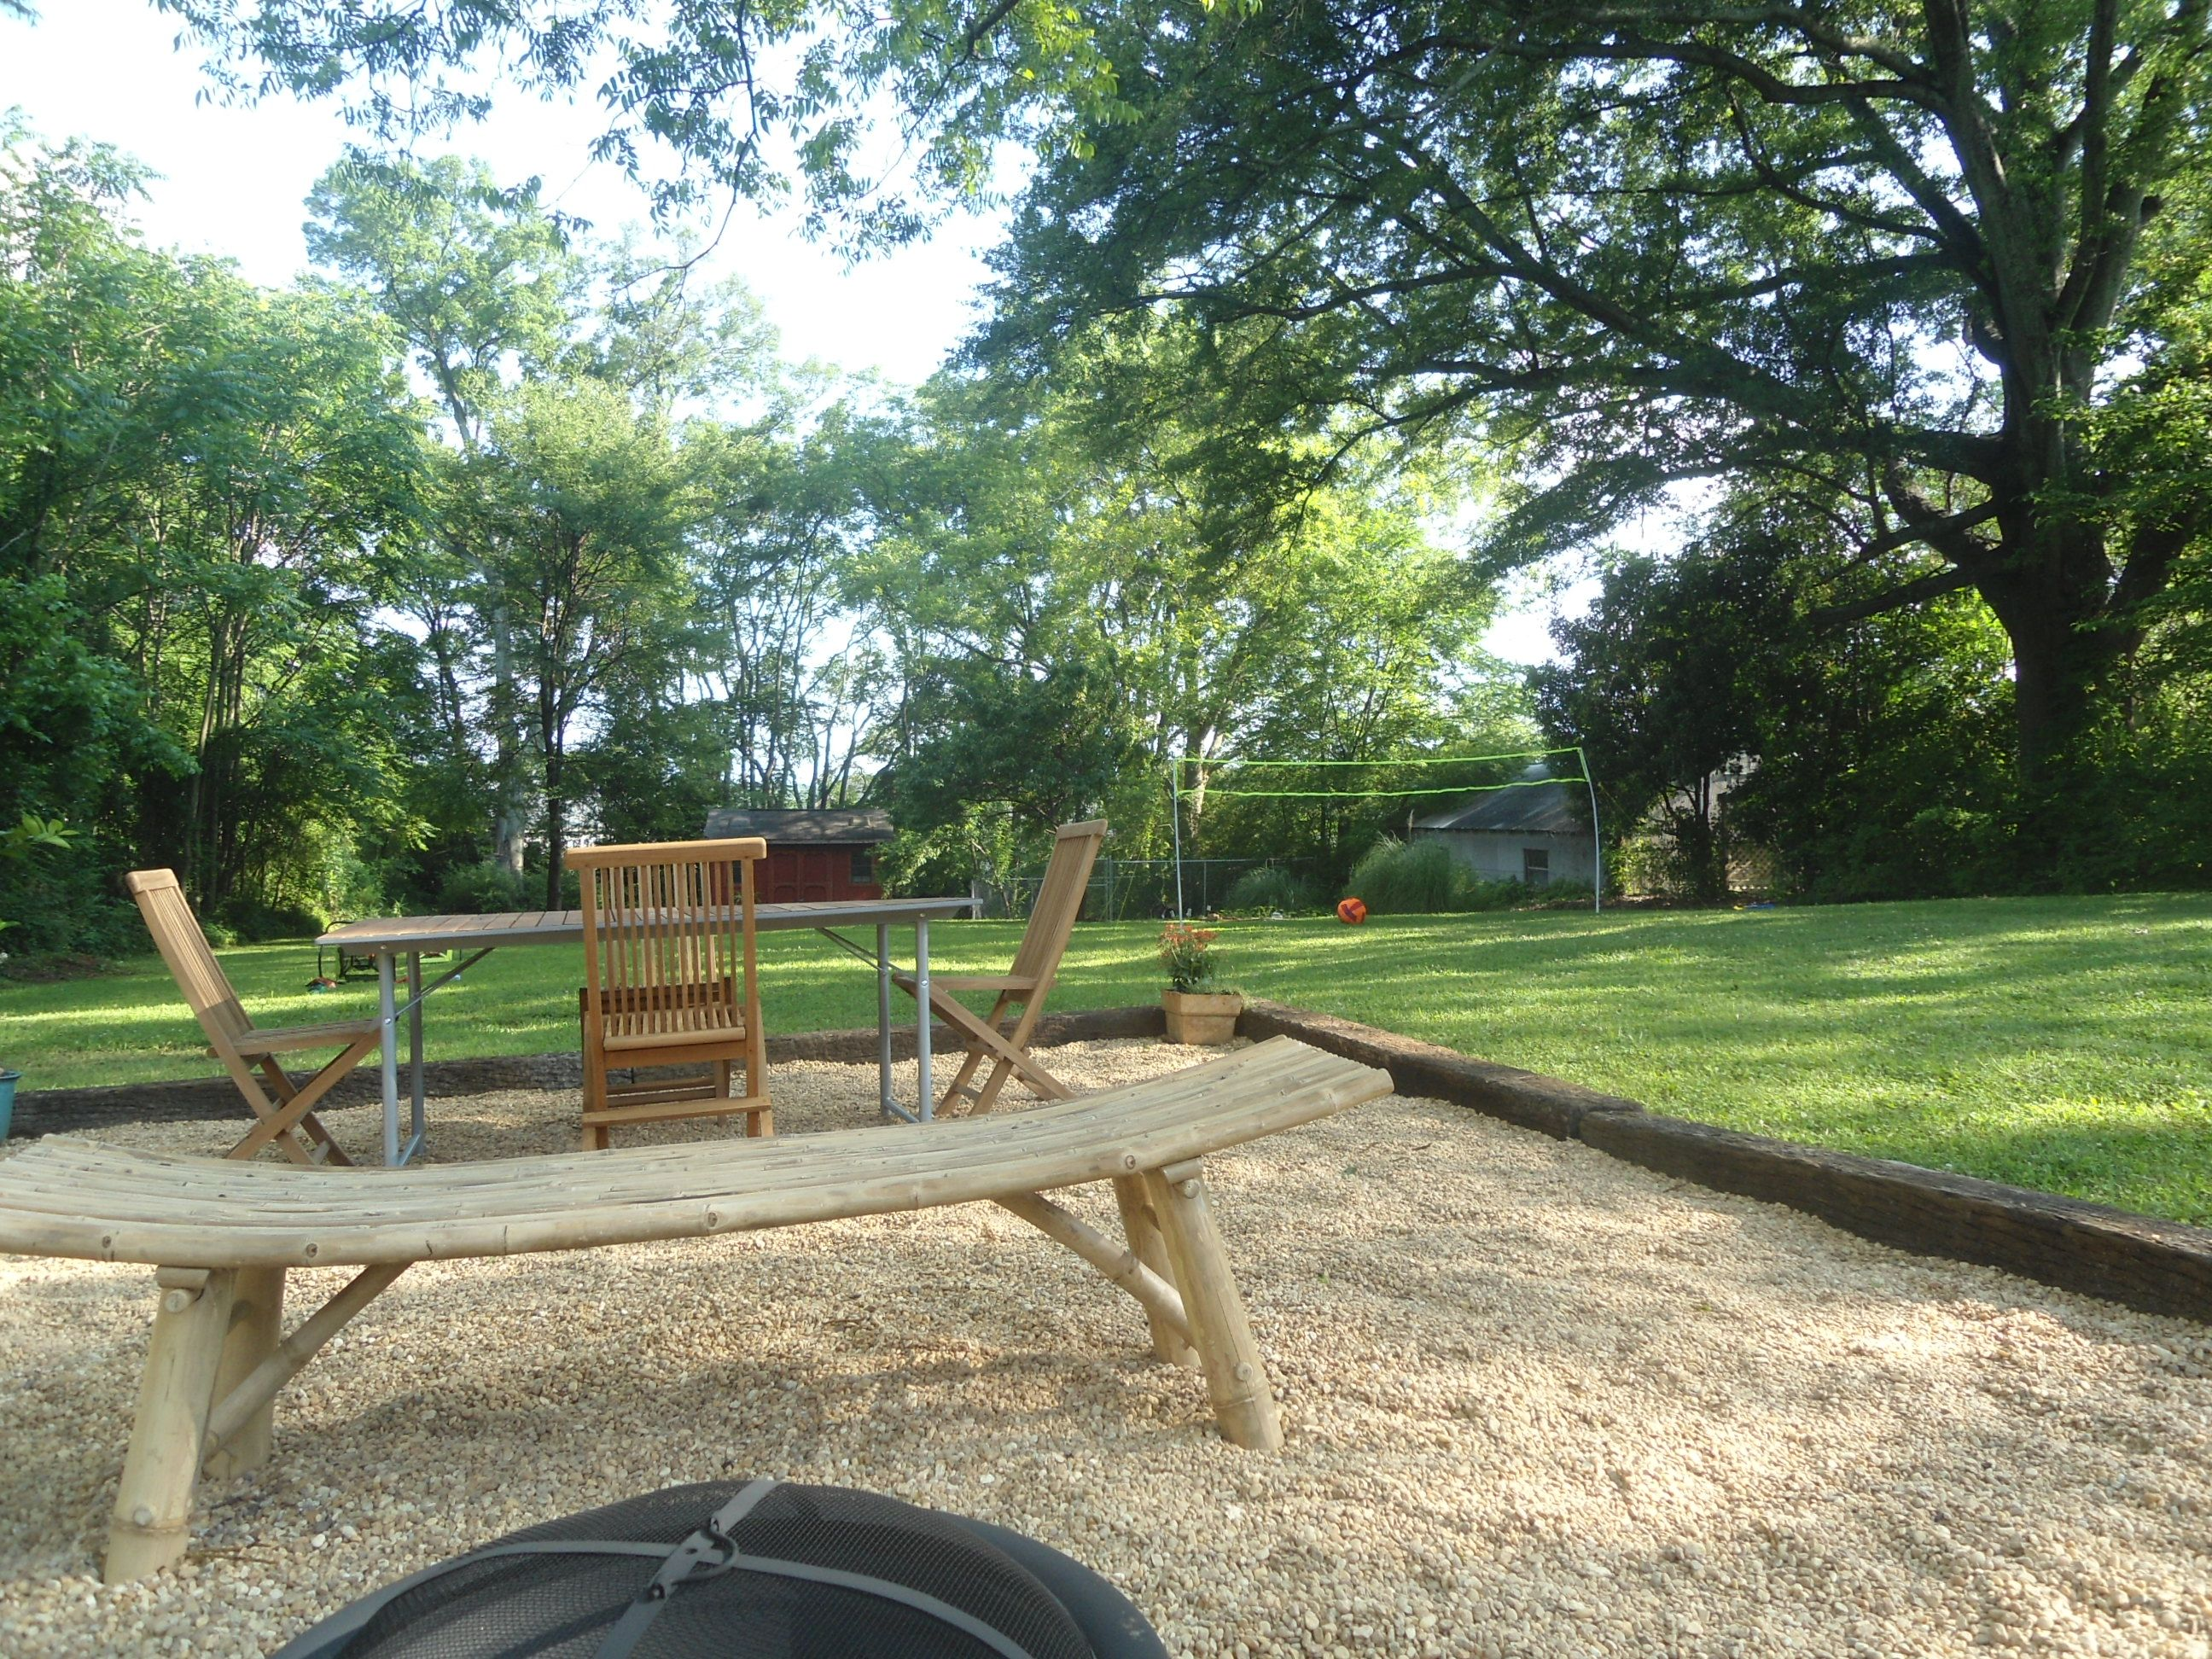 newly installed pea gravel patio area